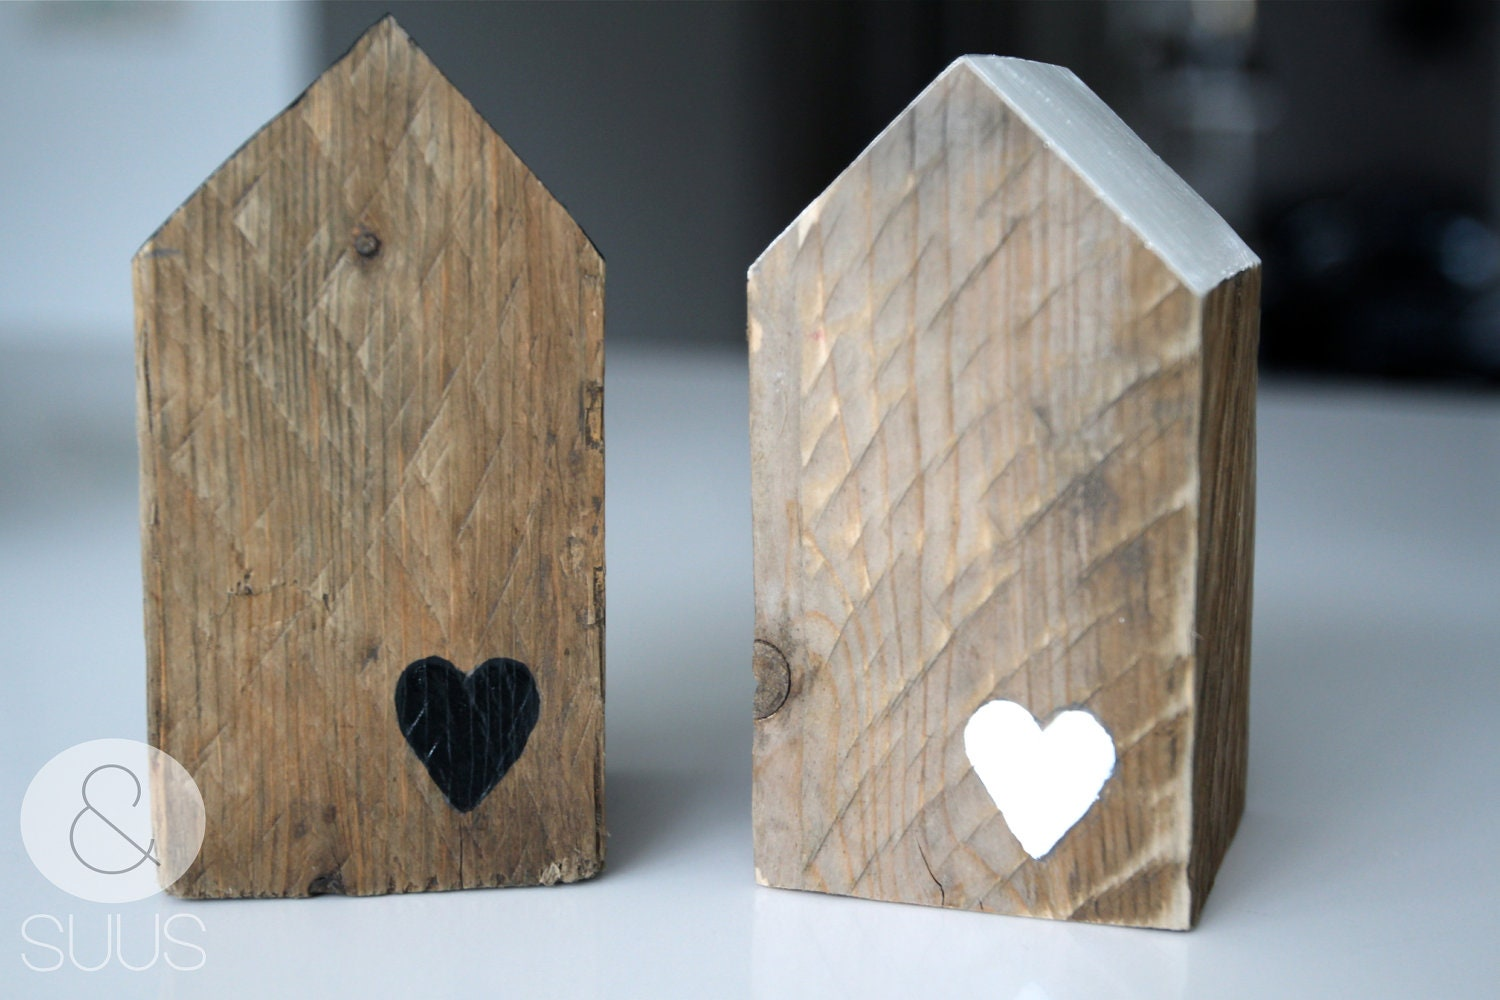 Houses of old wood with heart - ensuus